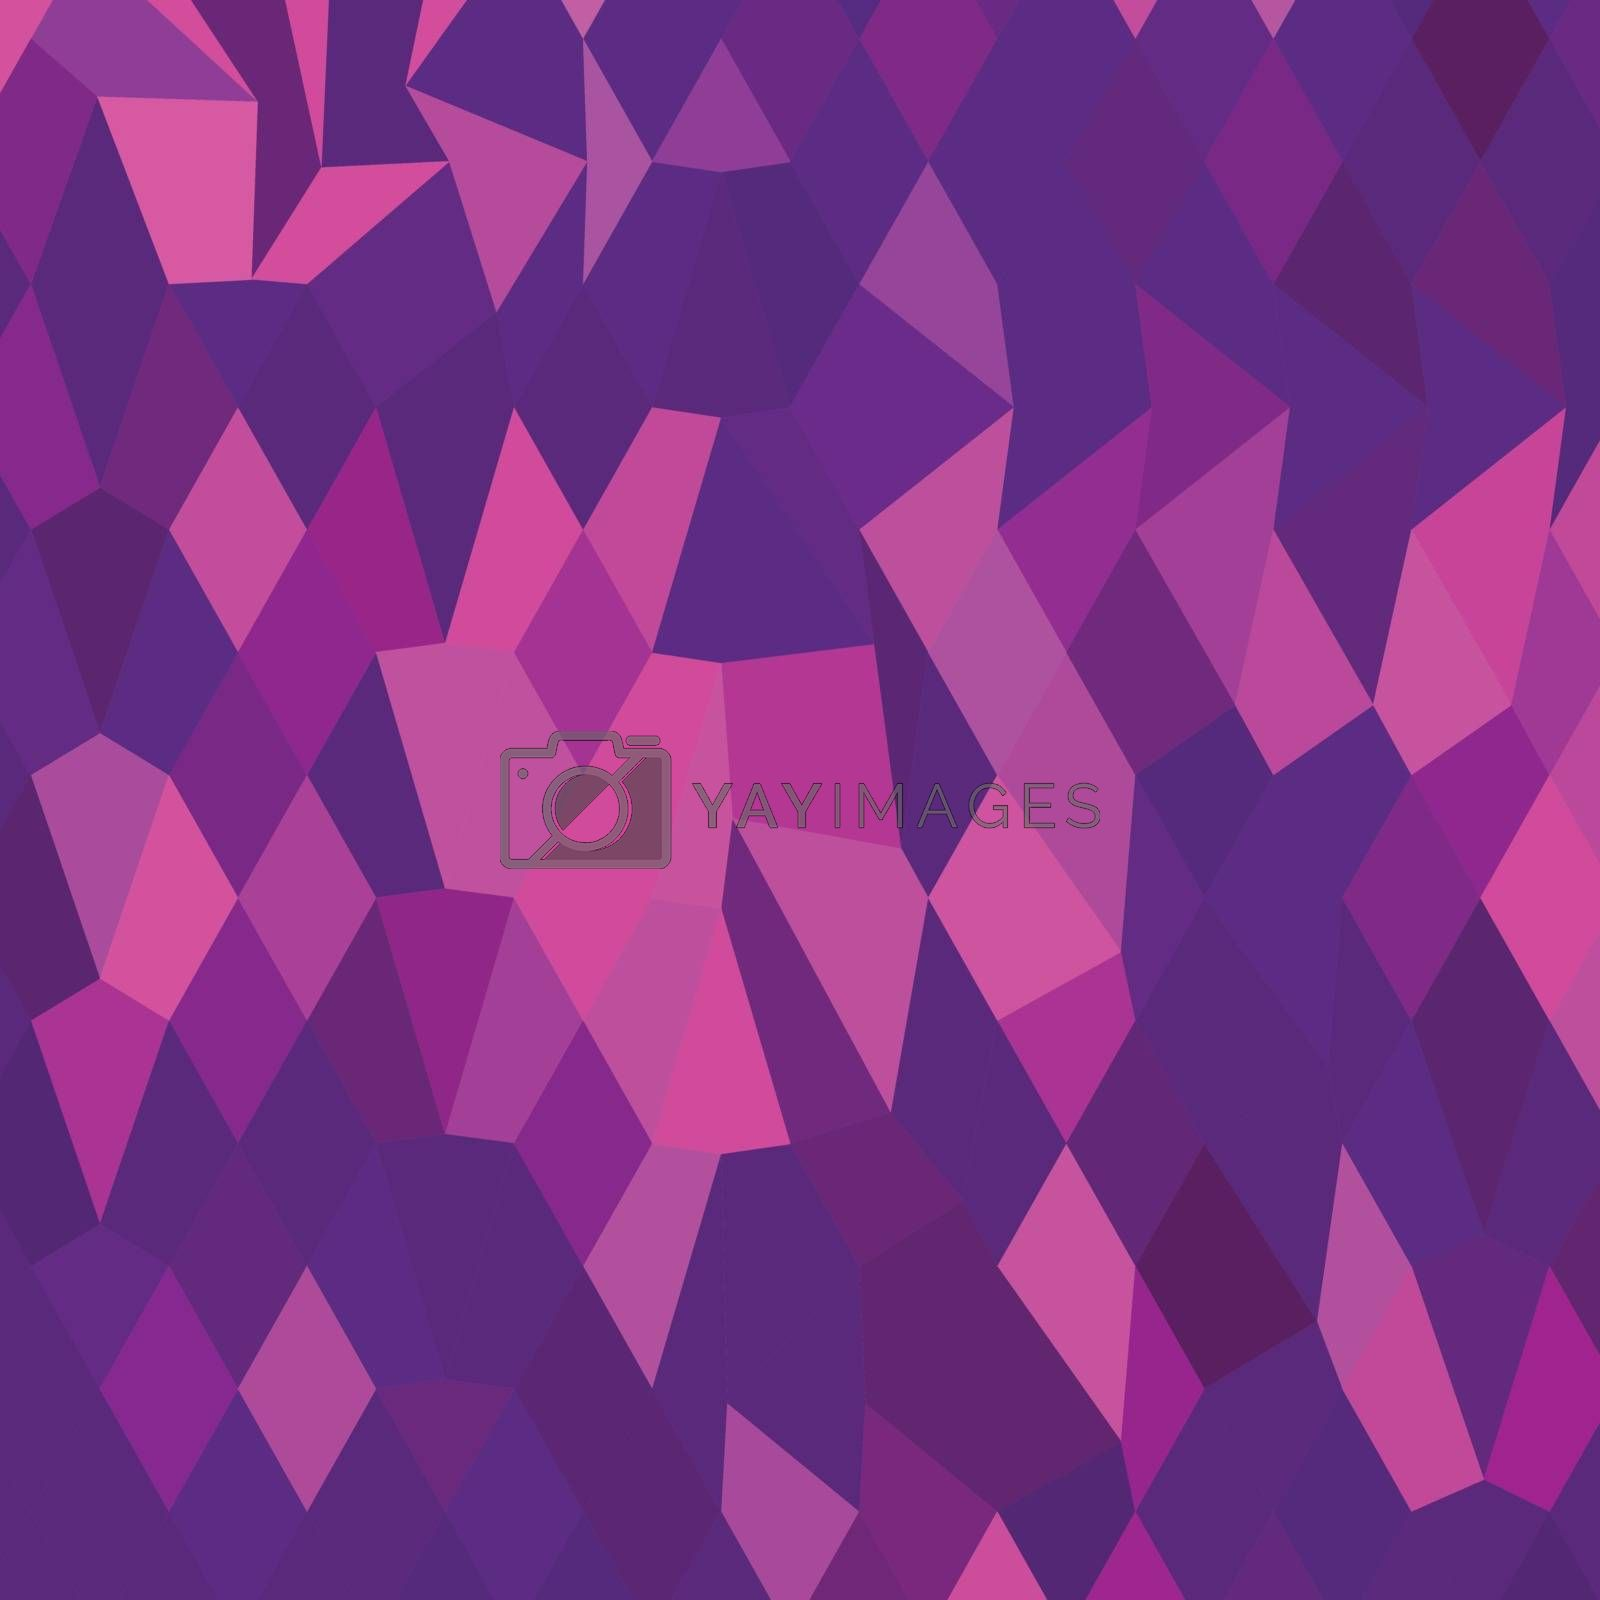 Low polygon style illustration of a thistle purple abstract geometric background.